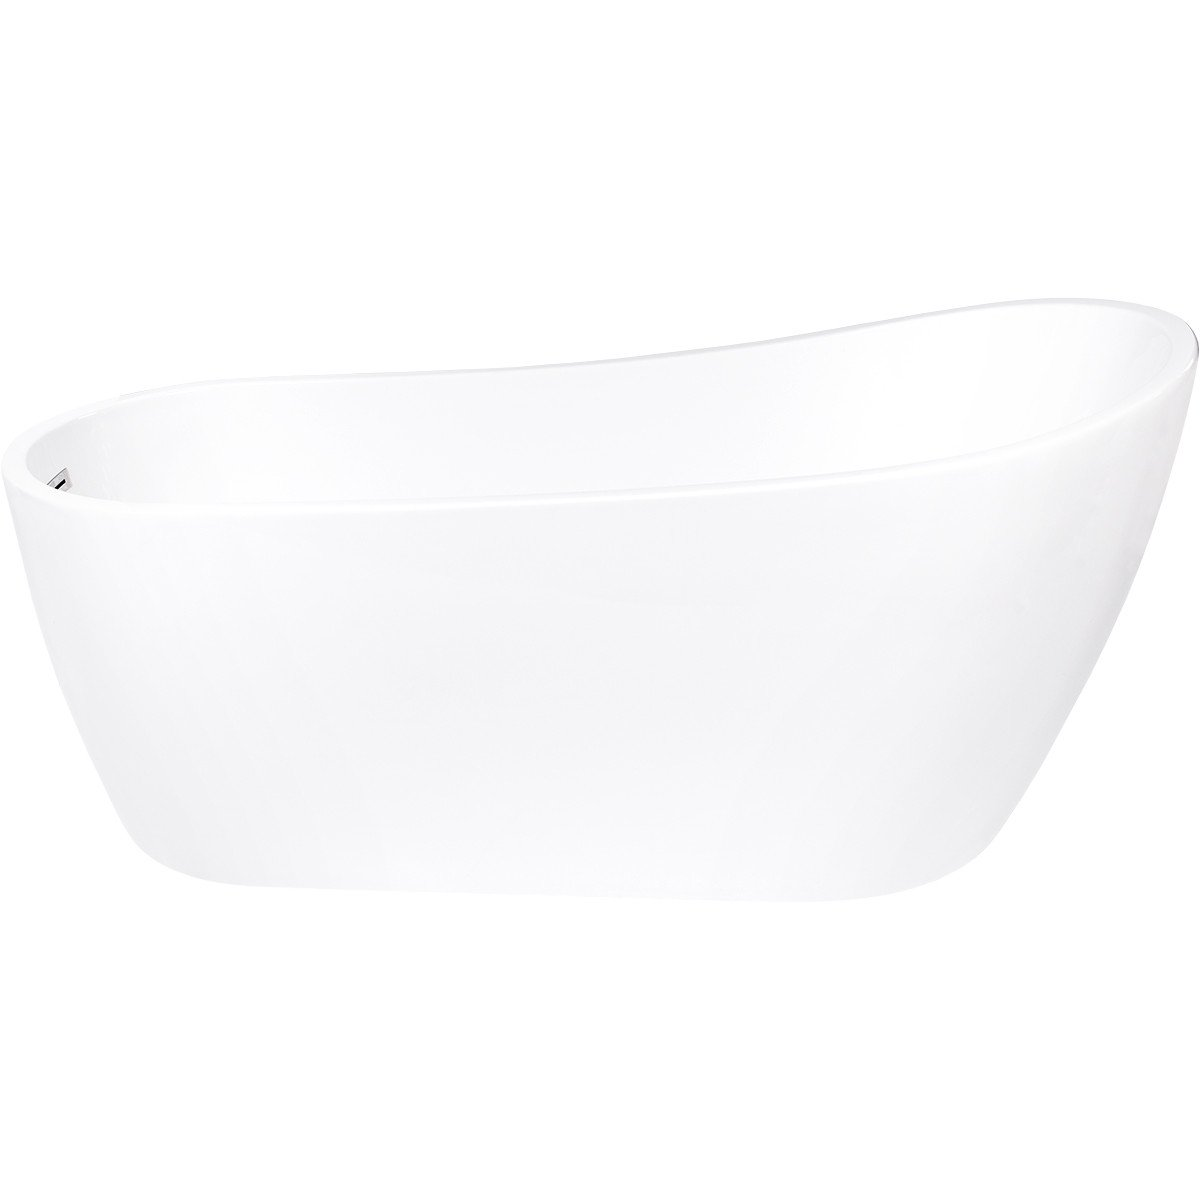 Salerno 1665 Luxury Slipper Bath